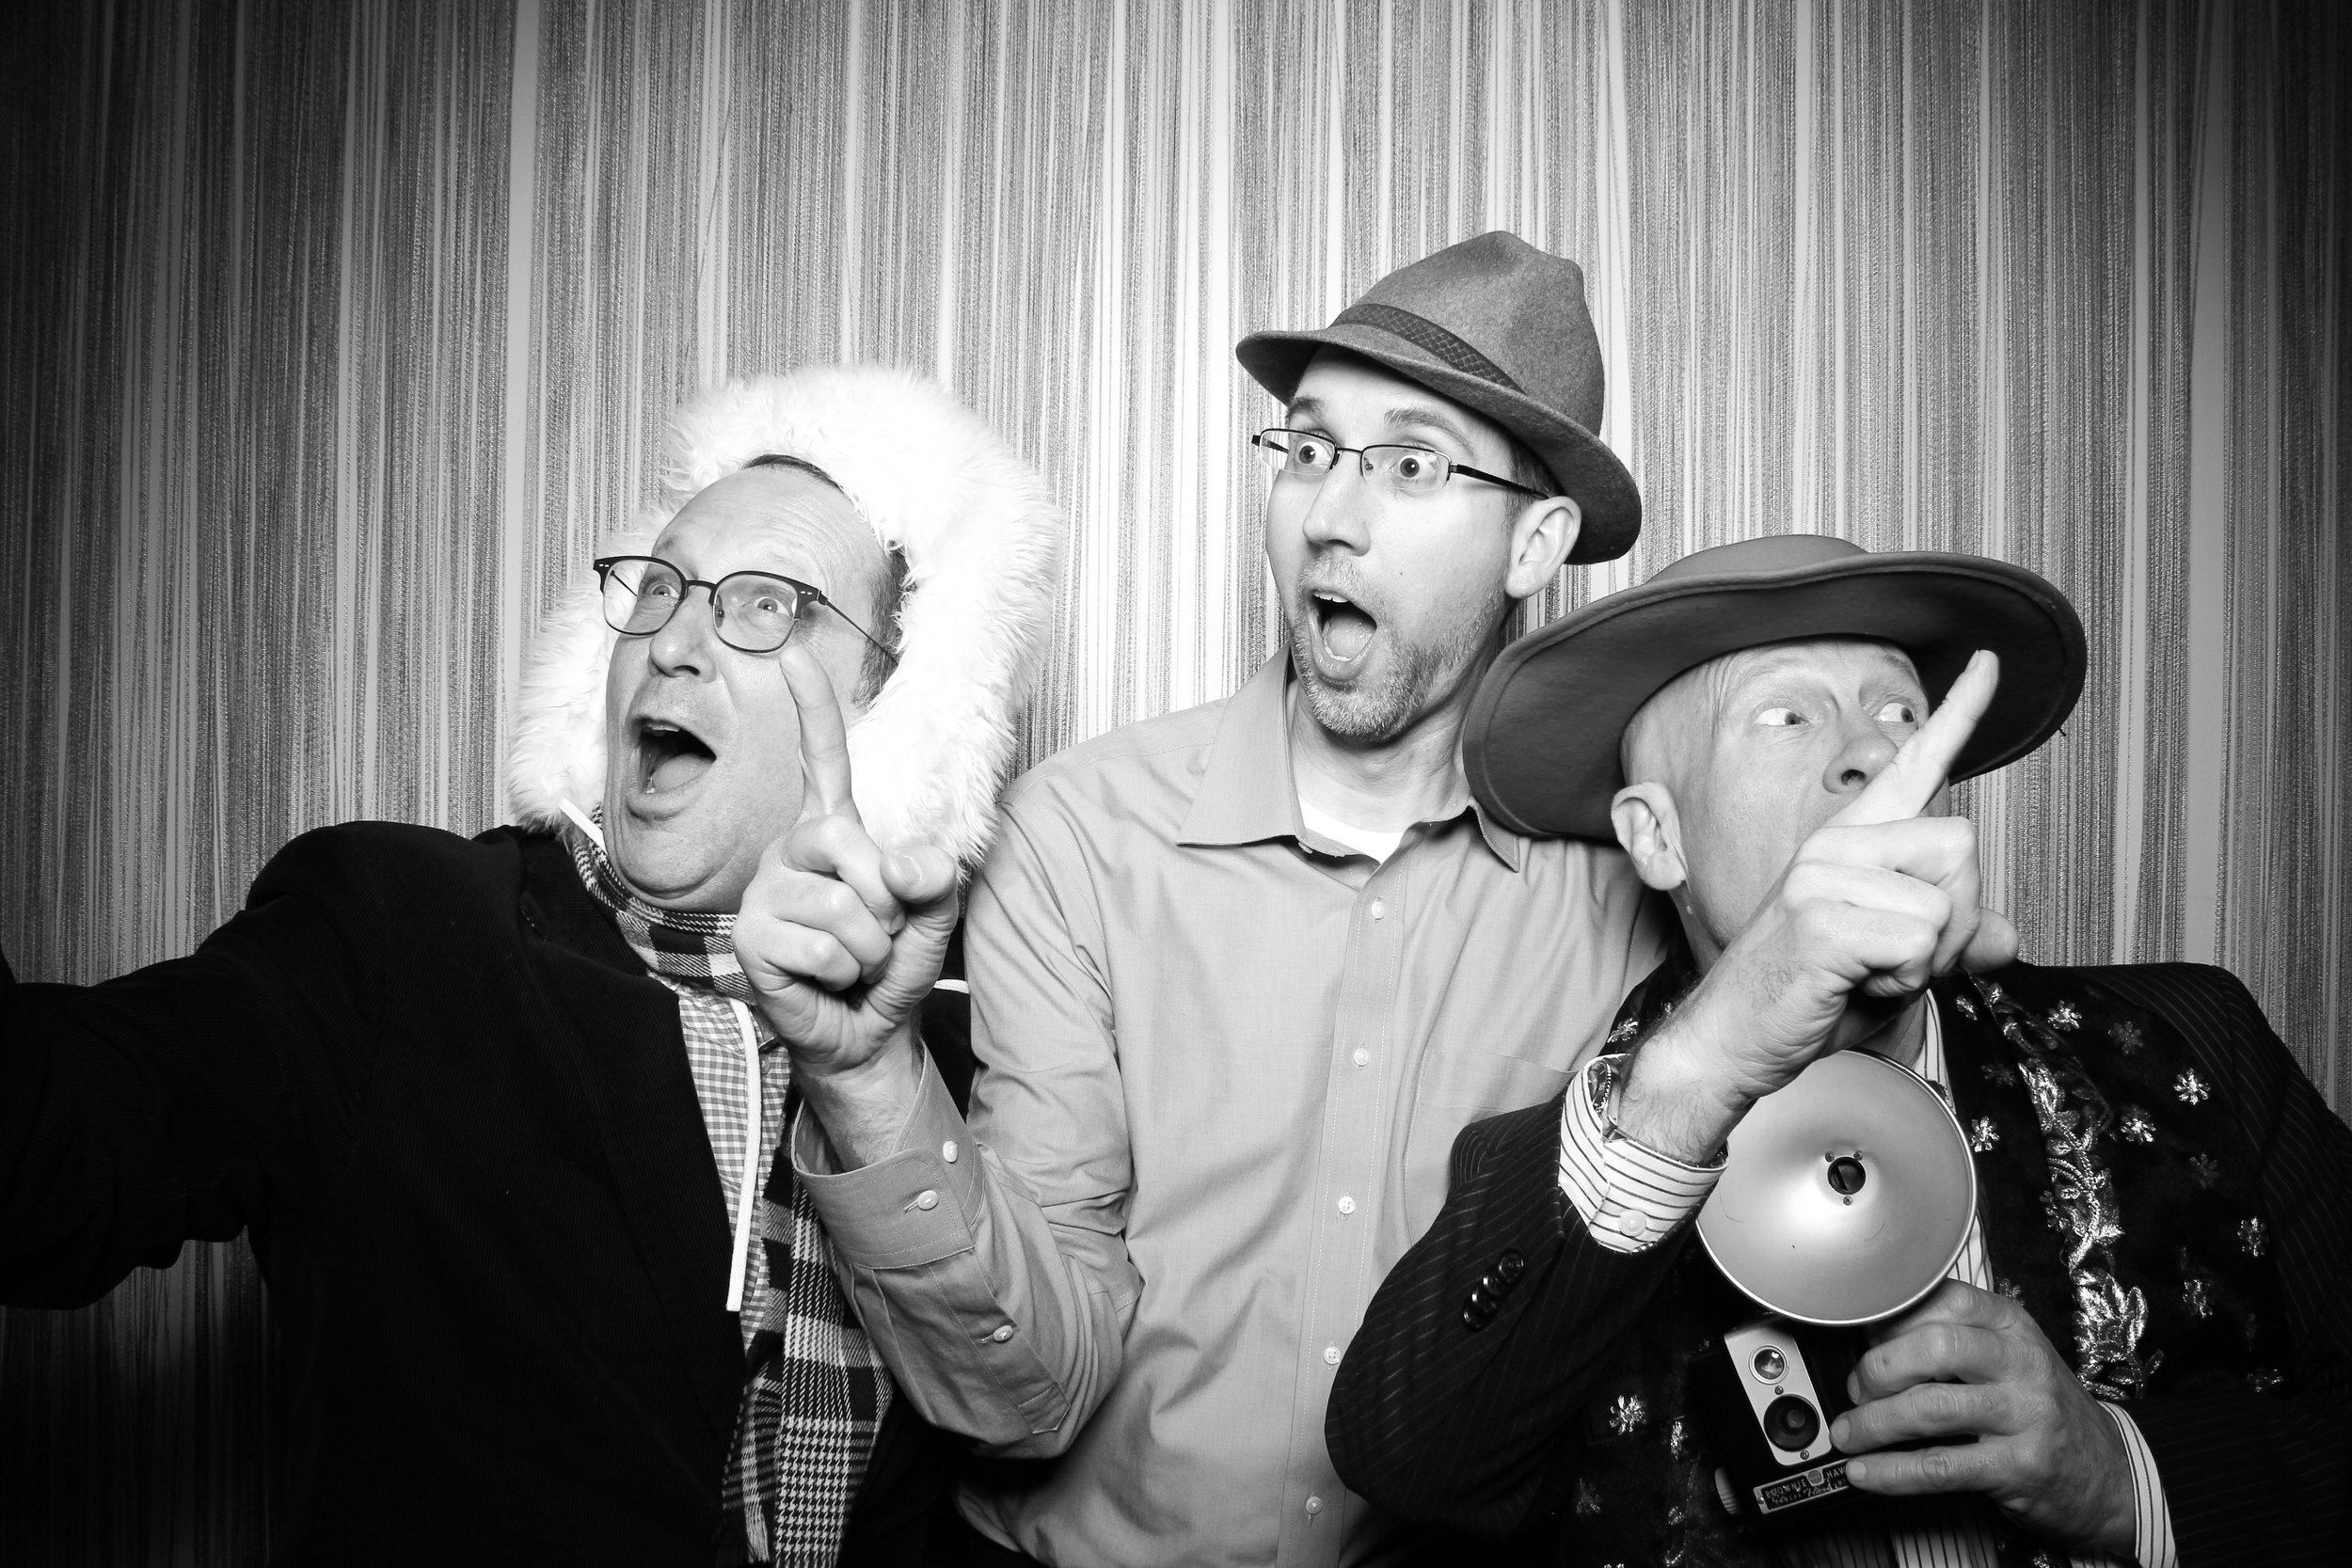 Chicago_Vintage_Photobooth_Holiday_Party_Wit_Hotel_16.jpg